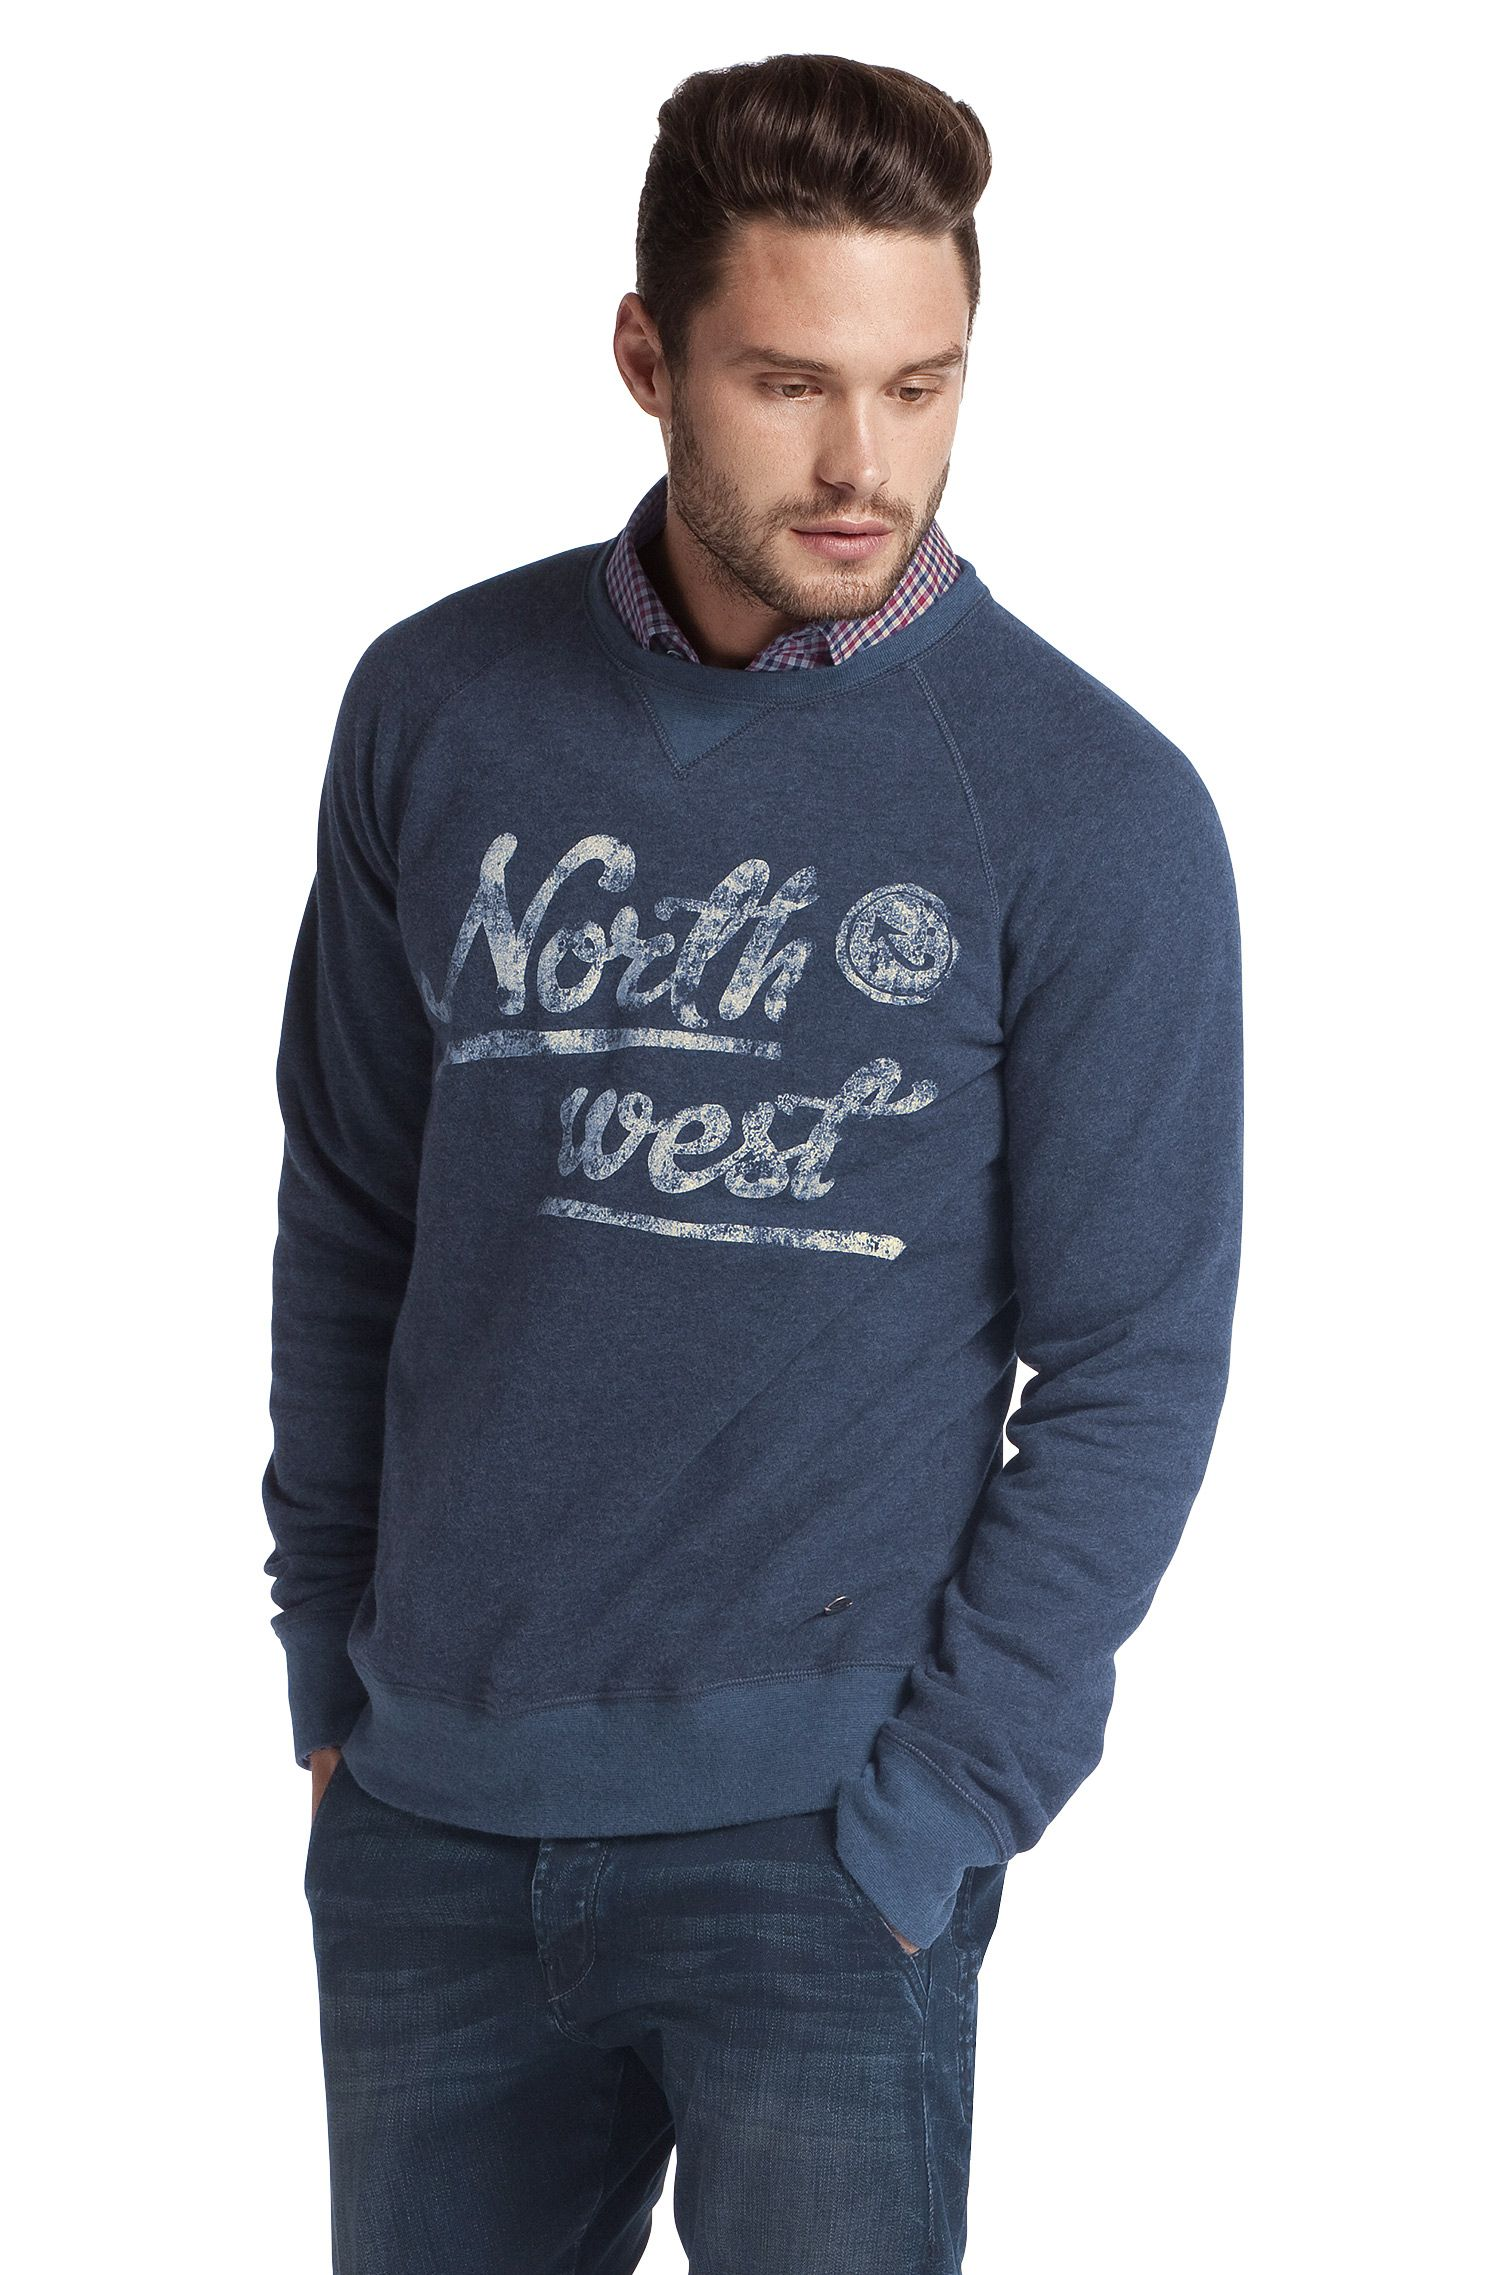 Sweatshirt ´Wic` mit Brustprint